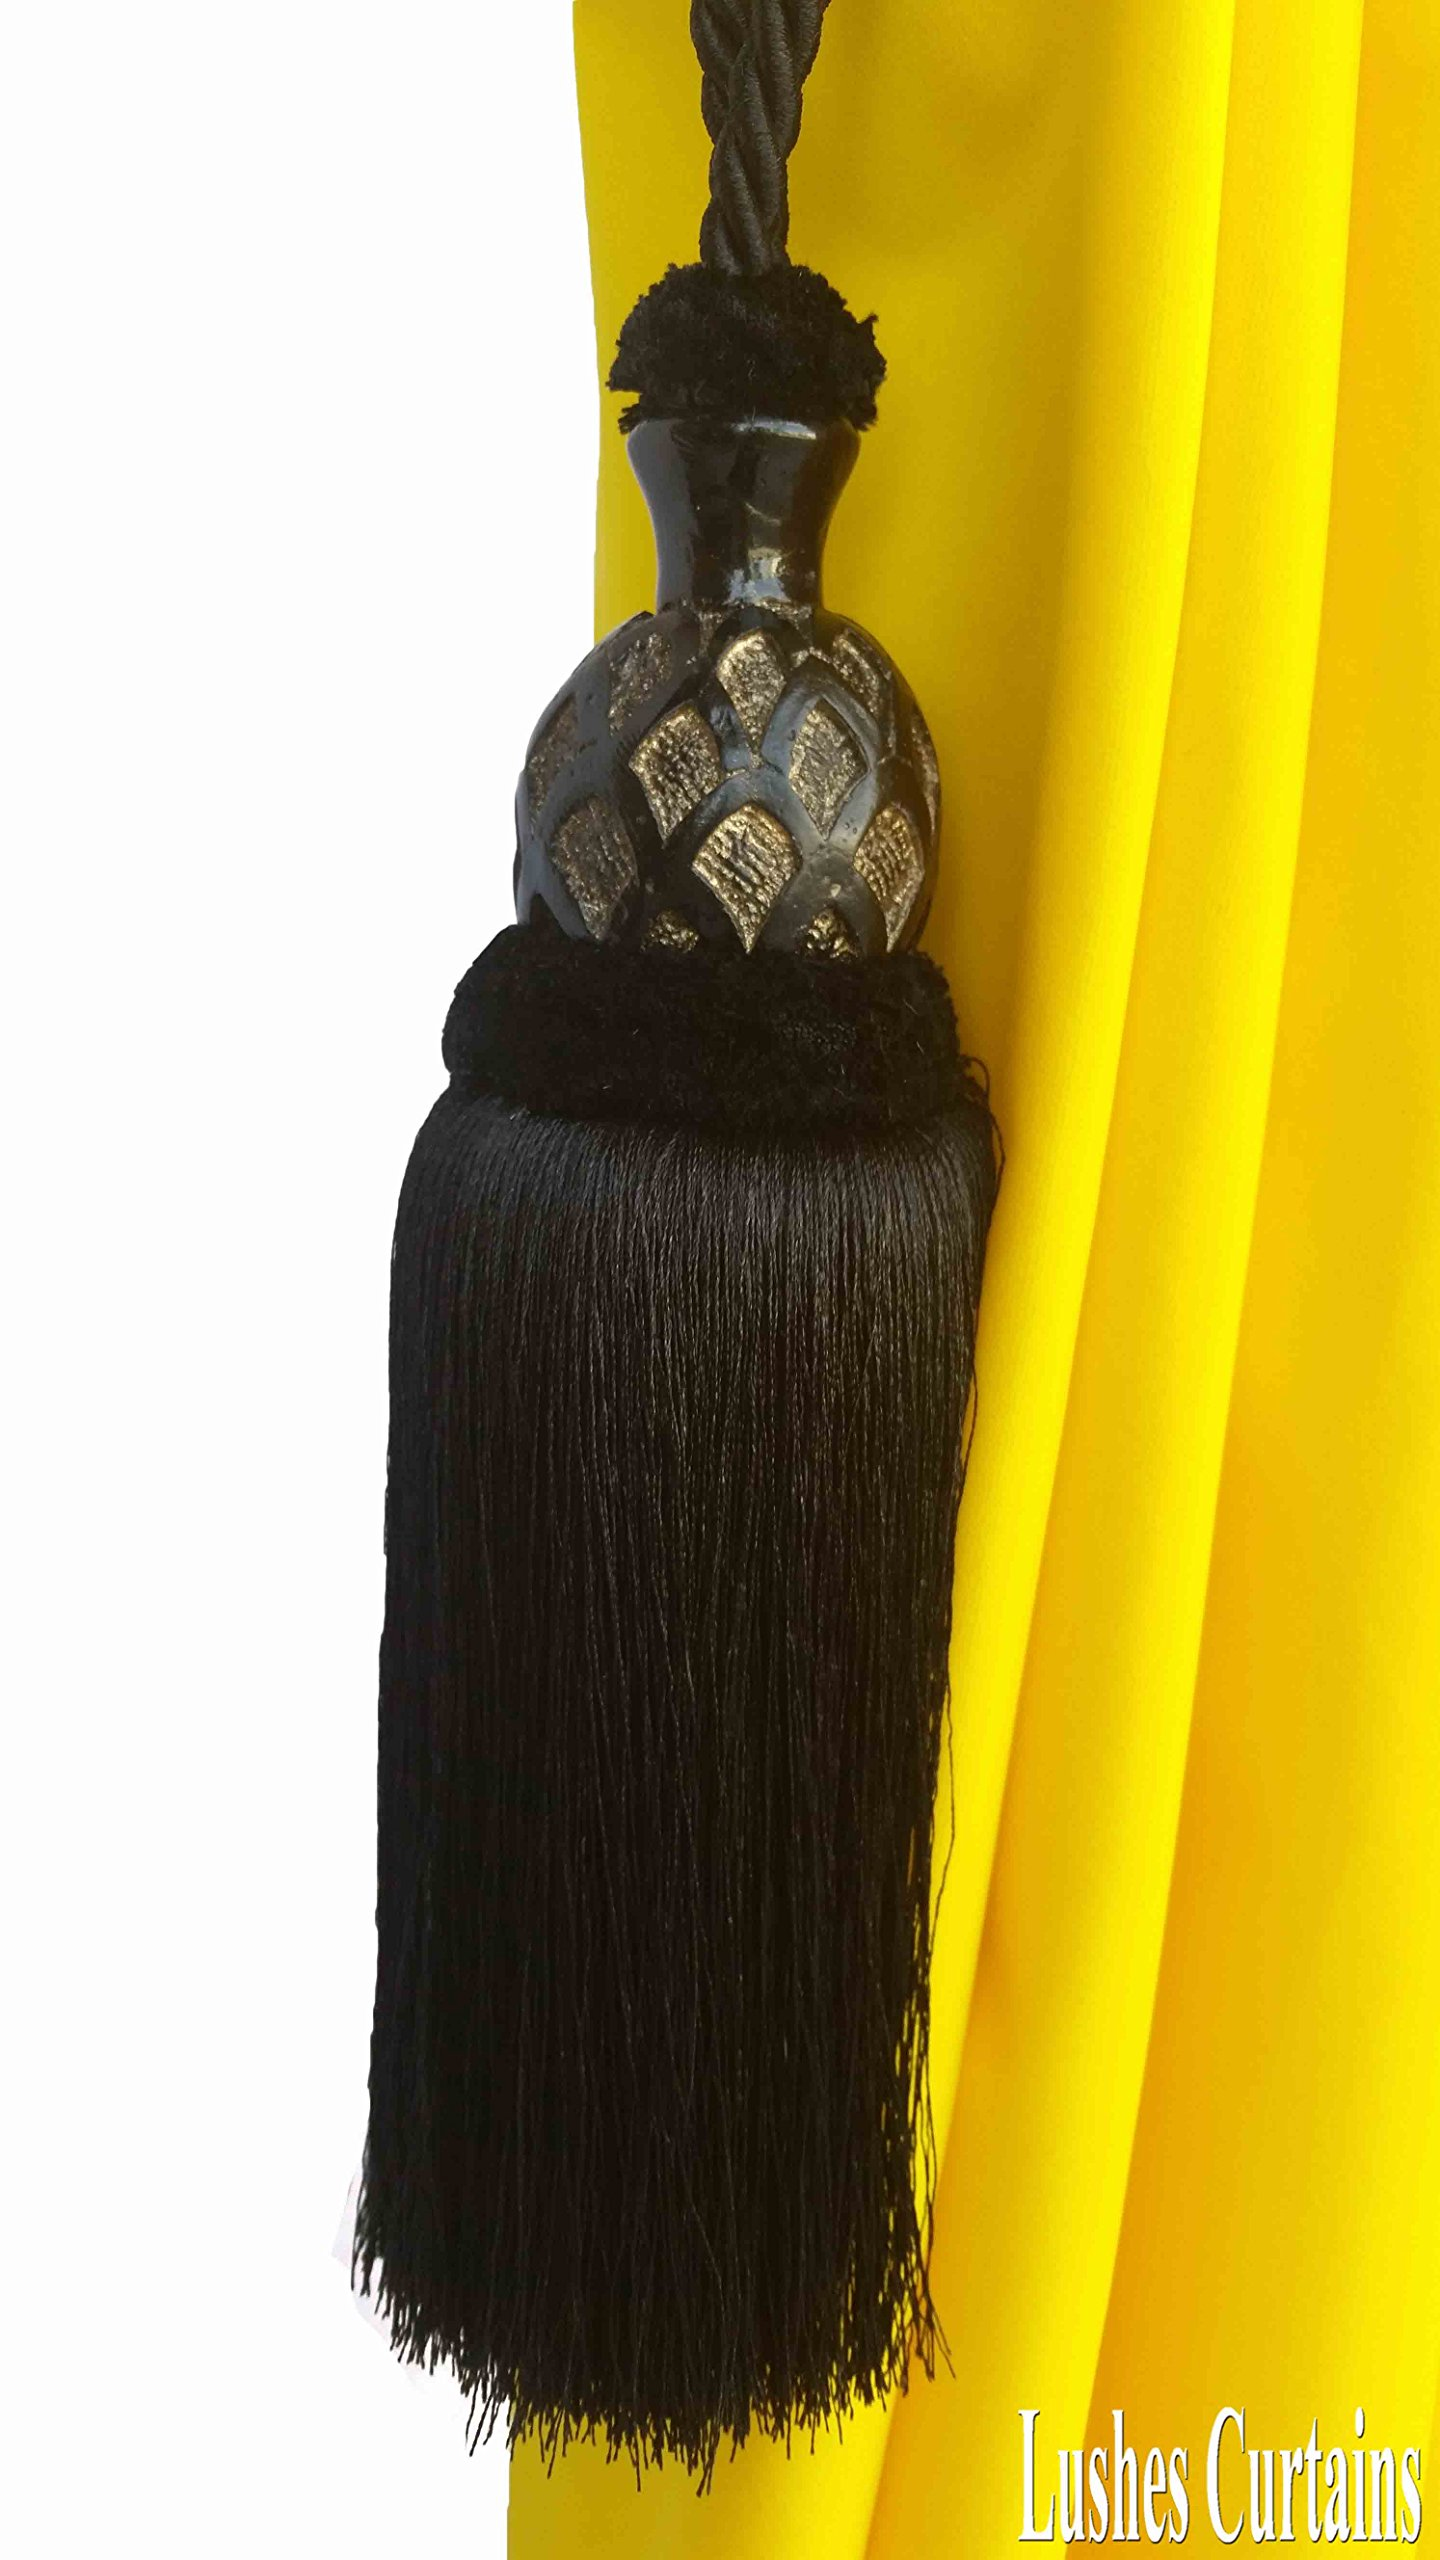 1 Luxury Handmade Black Color w/Wood Single Tassel Rope Tie Back Window Treatment Curtain Drapery Vintage Look 2 Spread Cord Holdback Decor Tieback/Pull Back by Lushes Curtains (Image #3)